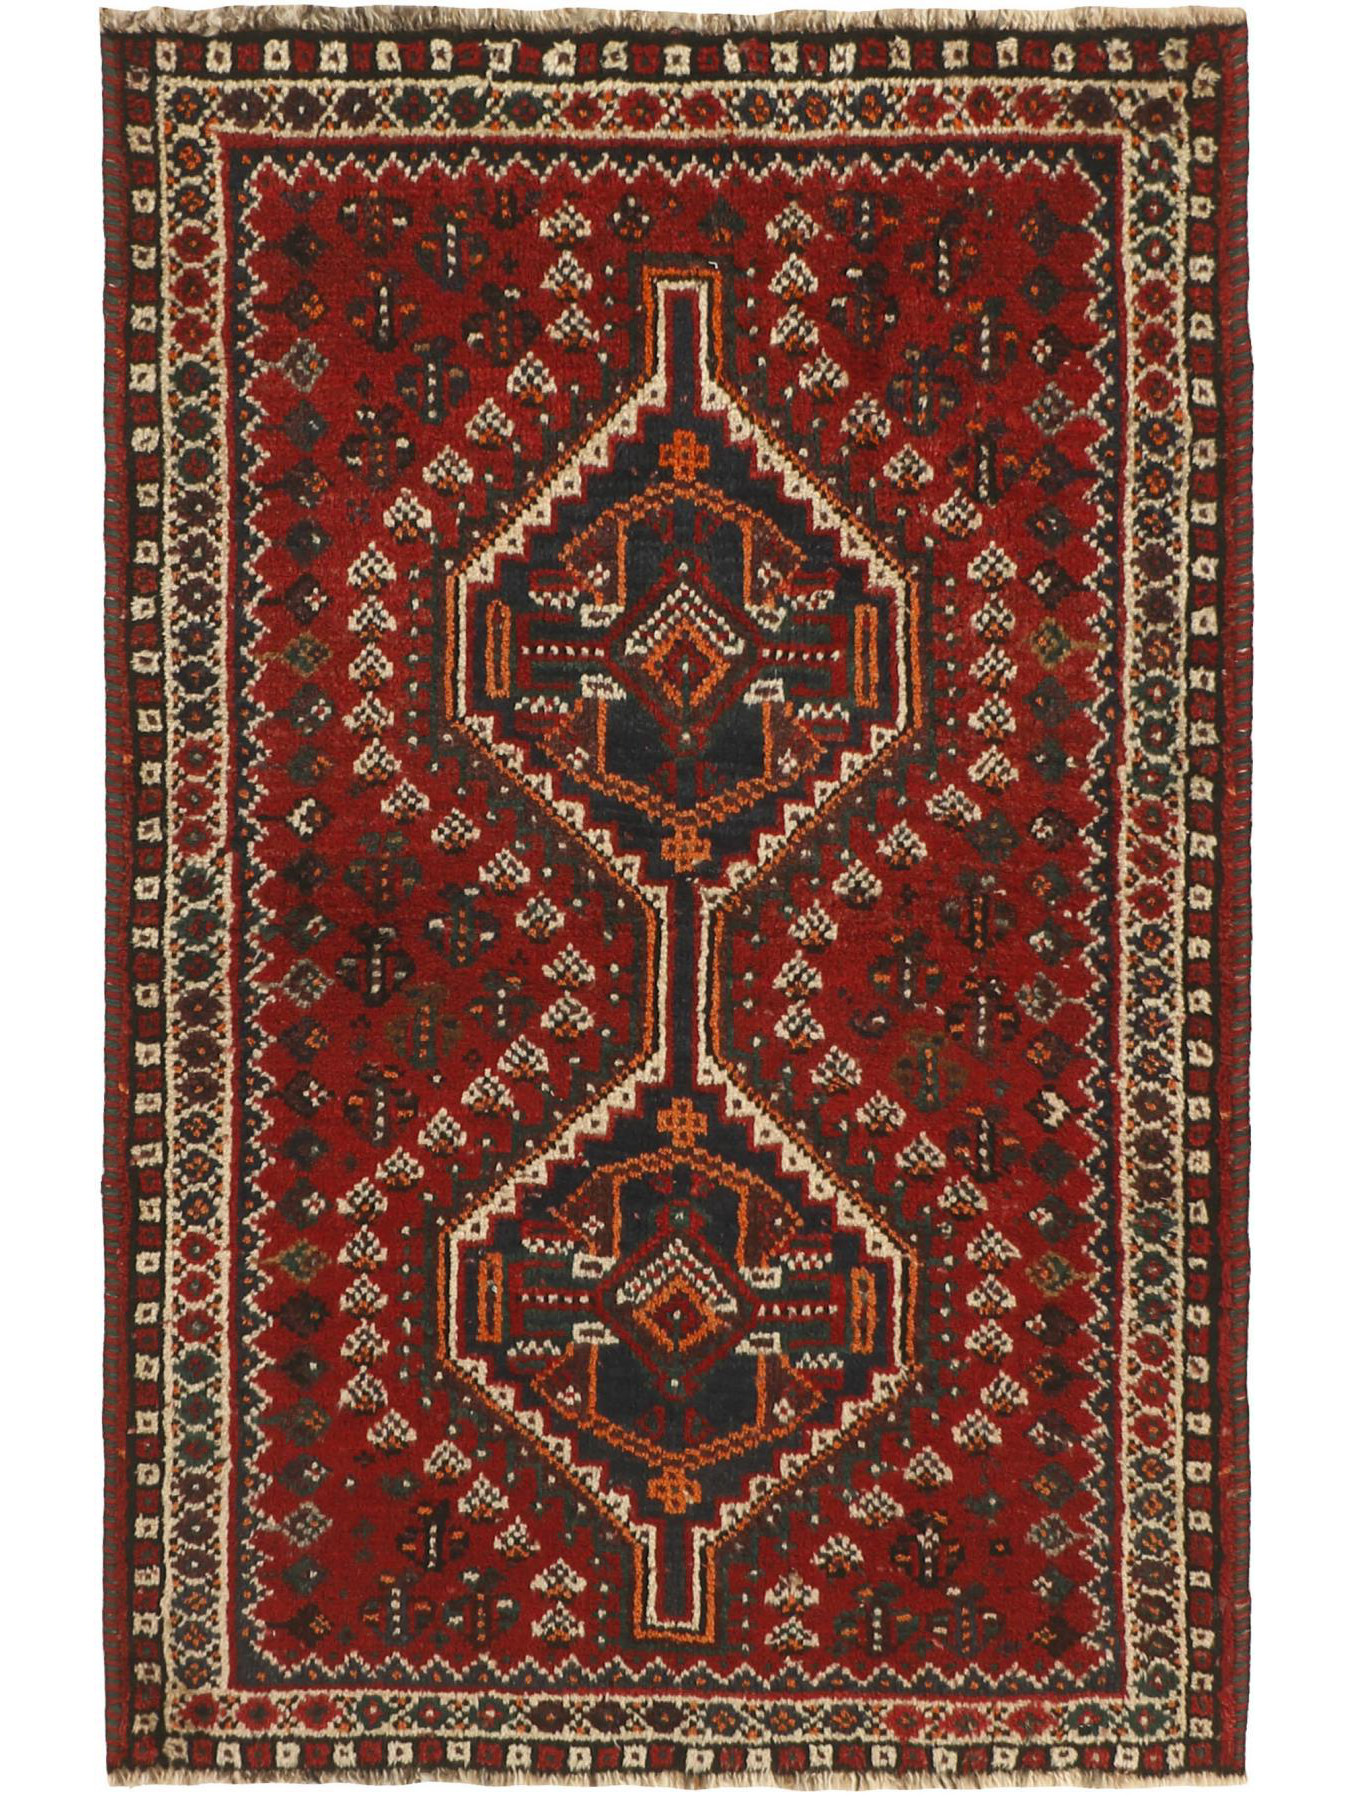 Persian carpets - Shiraz